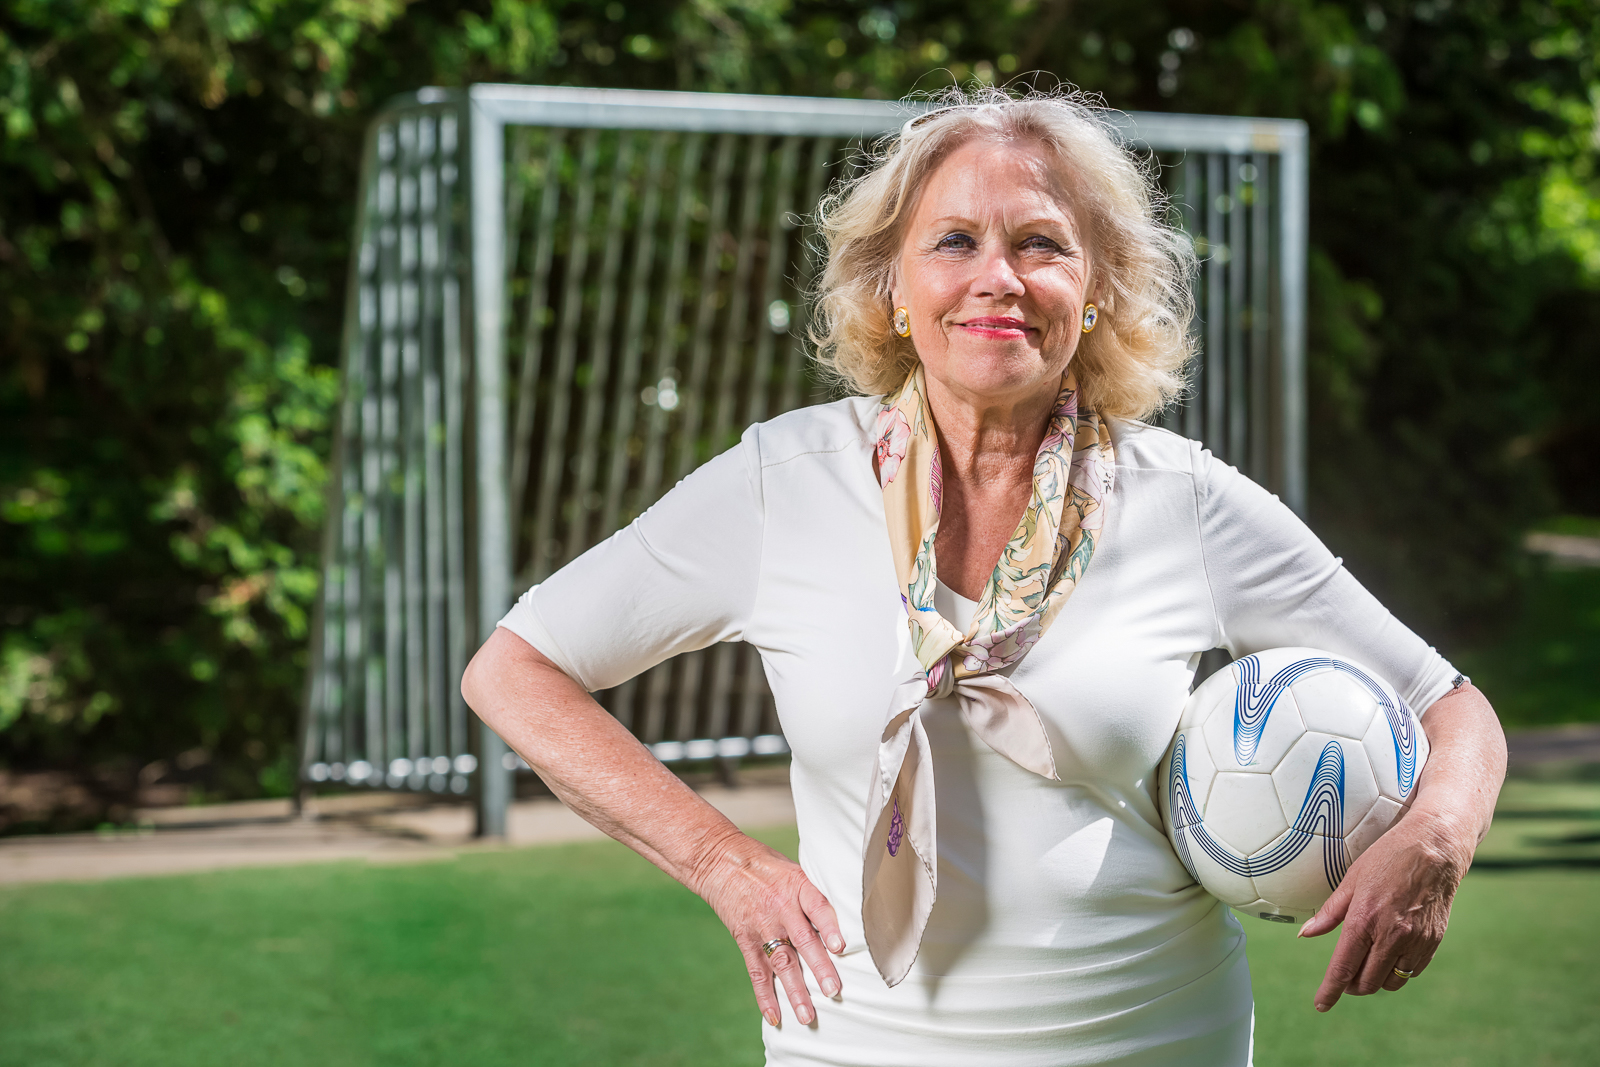 Older, retired woman, posing on a soccer pitch in a park in front of a goal, holding a ball under her arm